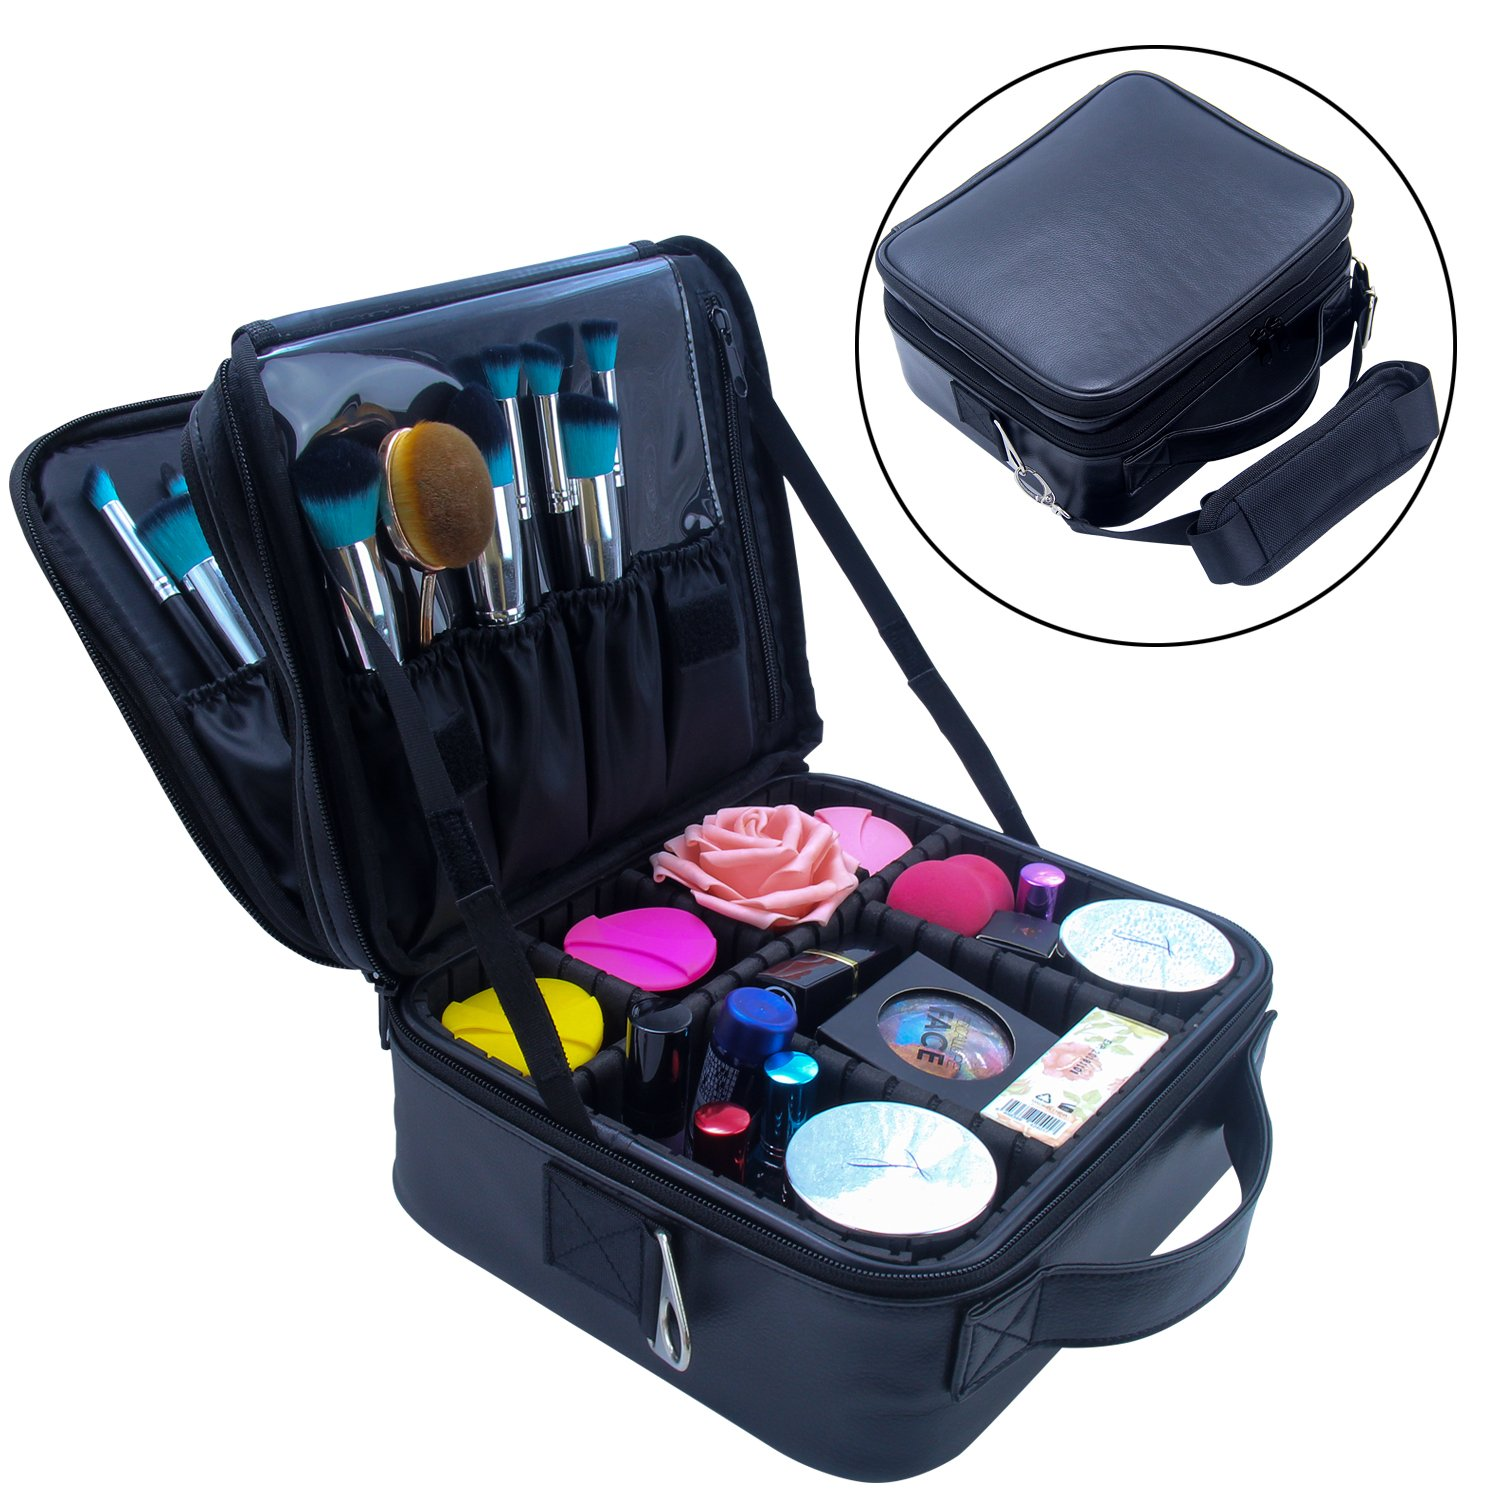 Travel Makeup Bag Makeup Train Case 2 Layer Premium PU Leather Cosmetic Makeup Brush Organizer with Mirror Portable Artist Storage Bag Toiletry Bag Perfect Gift (Black)